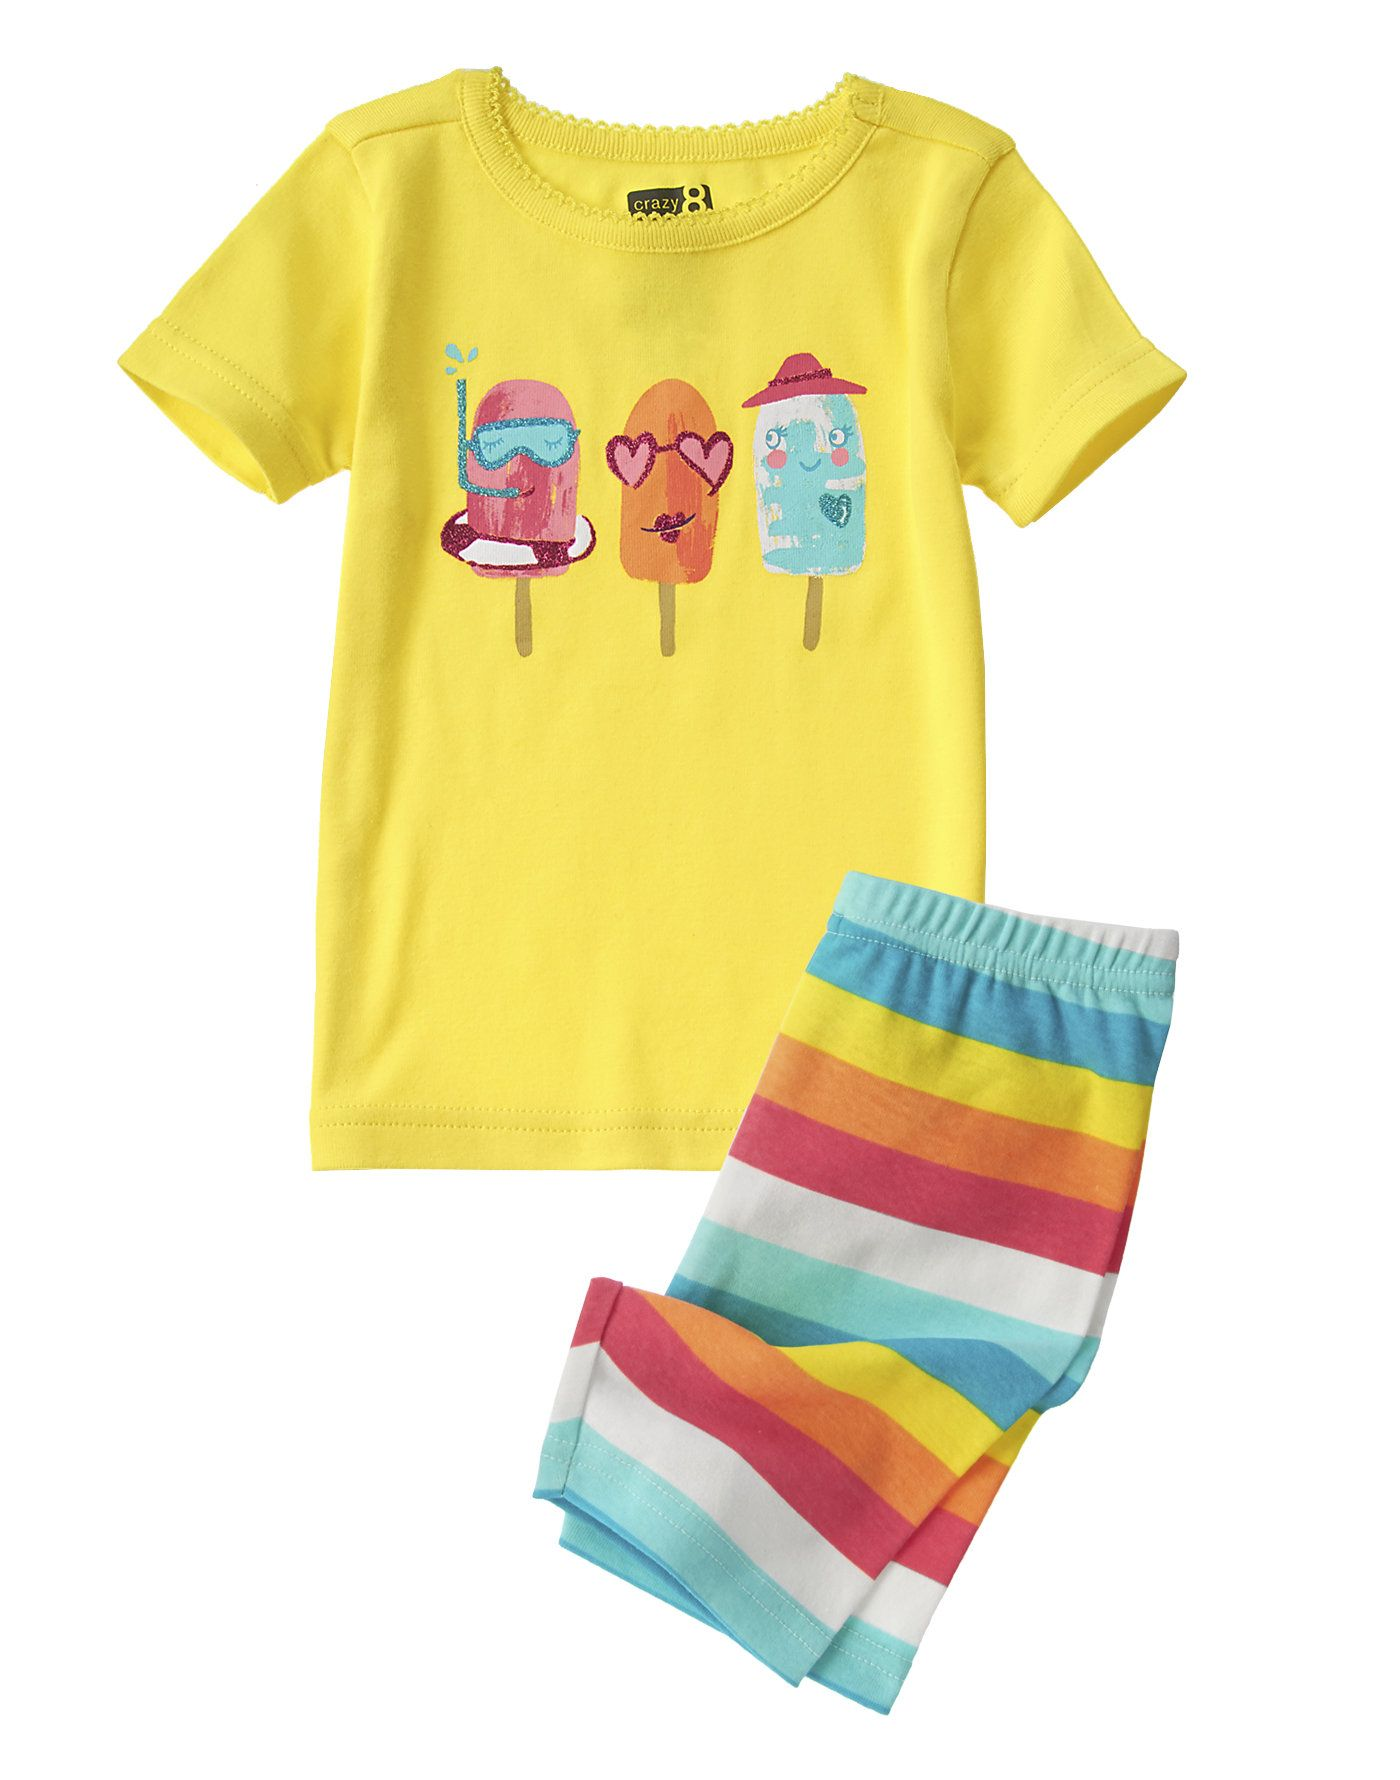 37c7b42d7 Popsicle Two-Piece Shortie Pajama Set at Crazy 8 | EVERYTHING FOR ...